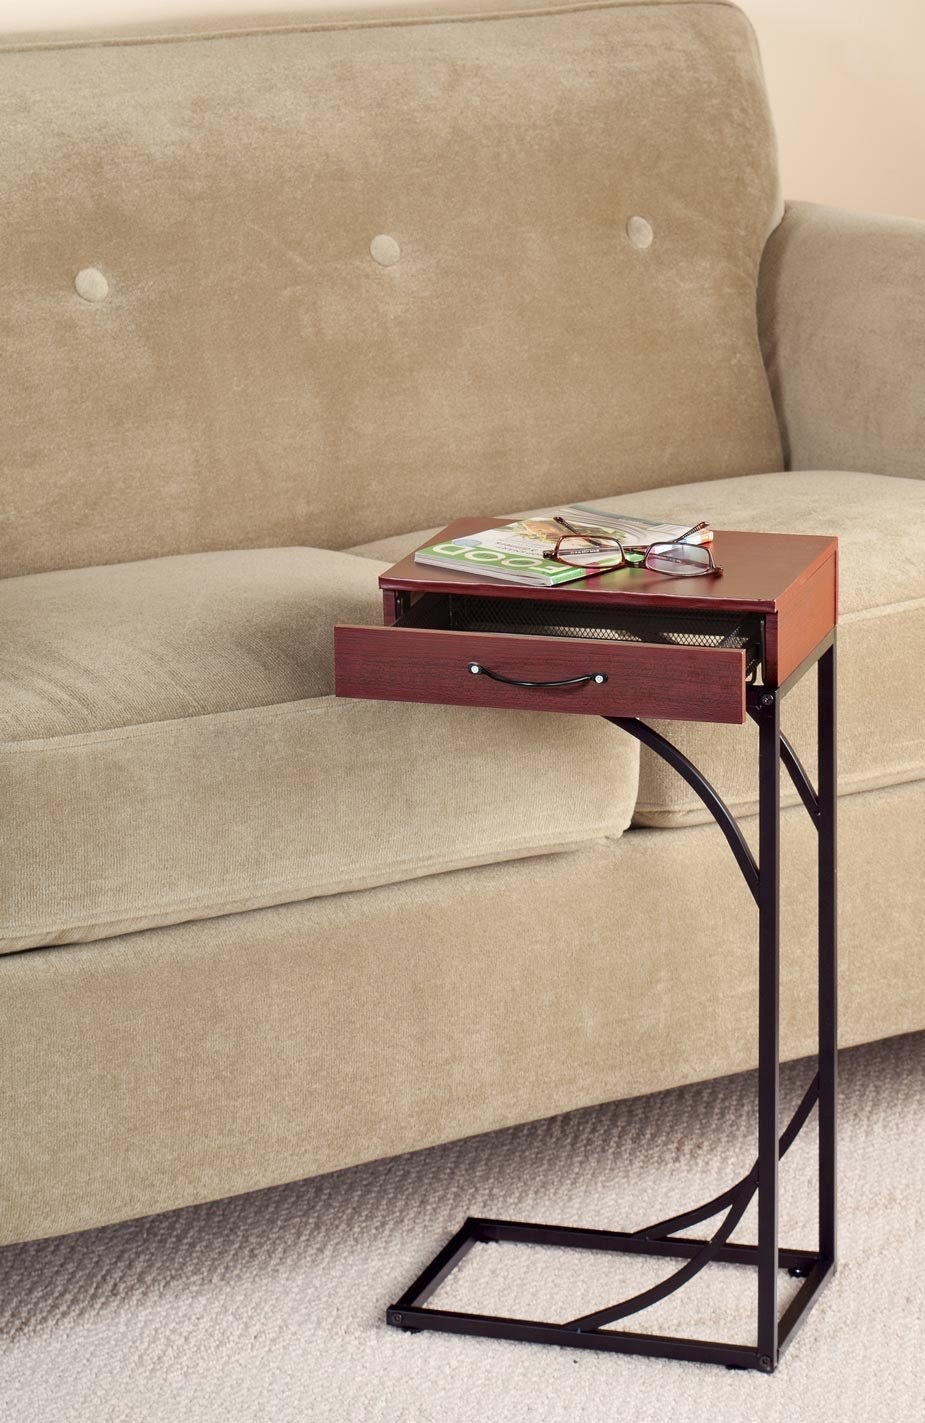 Sliding Under Couch Side Table With Storage Drawer